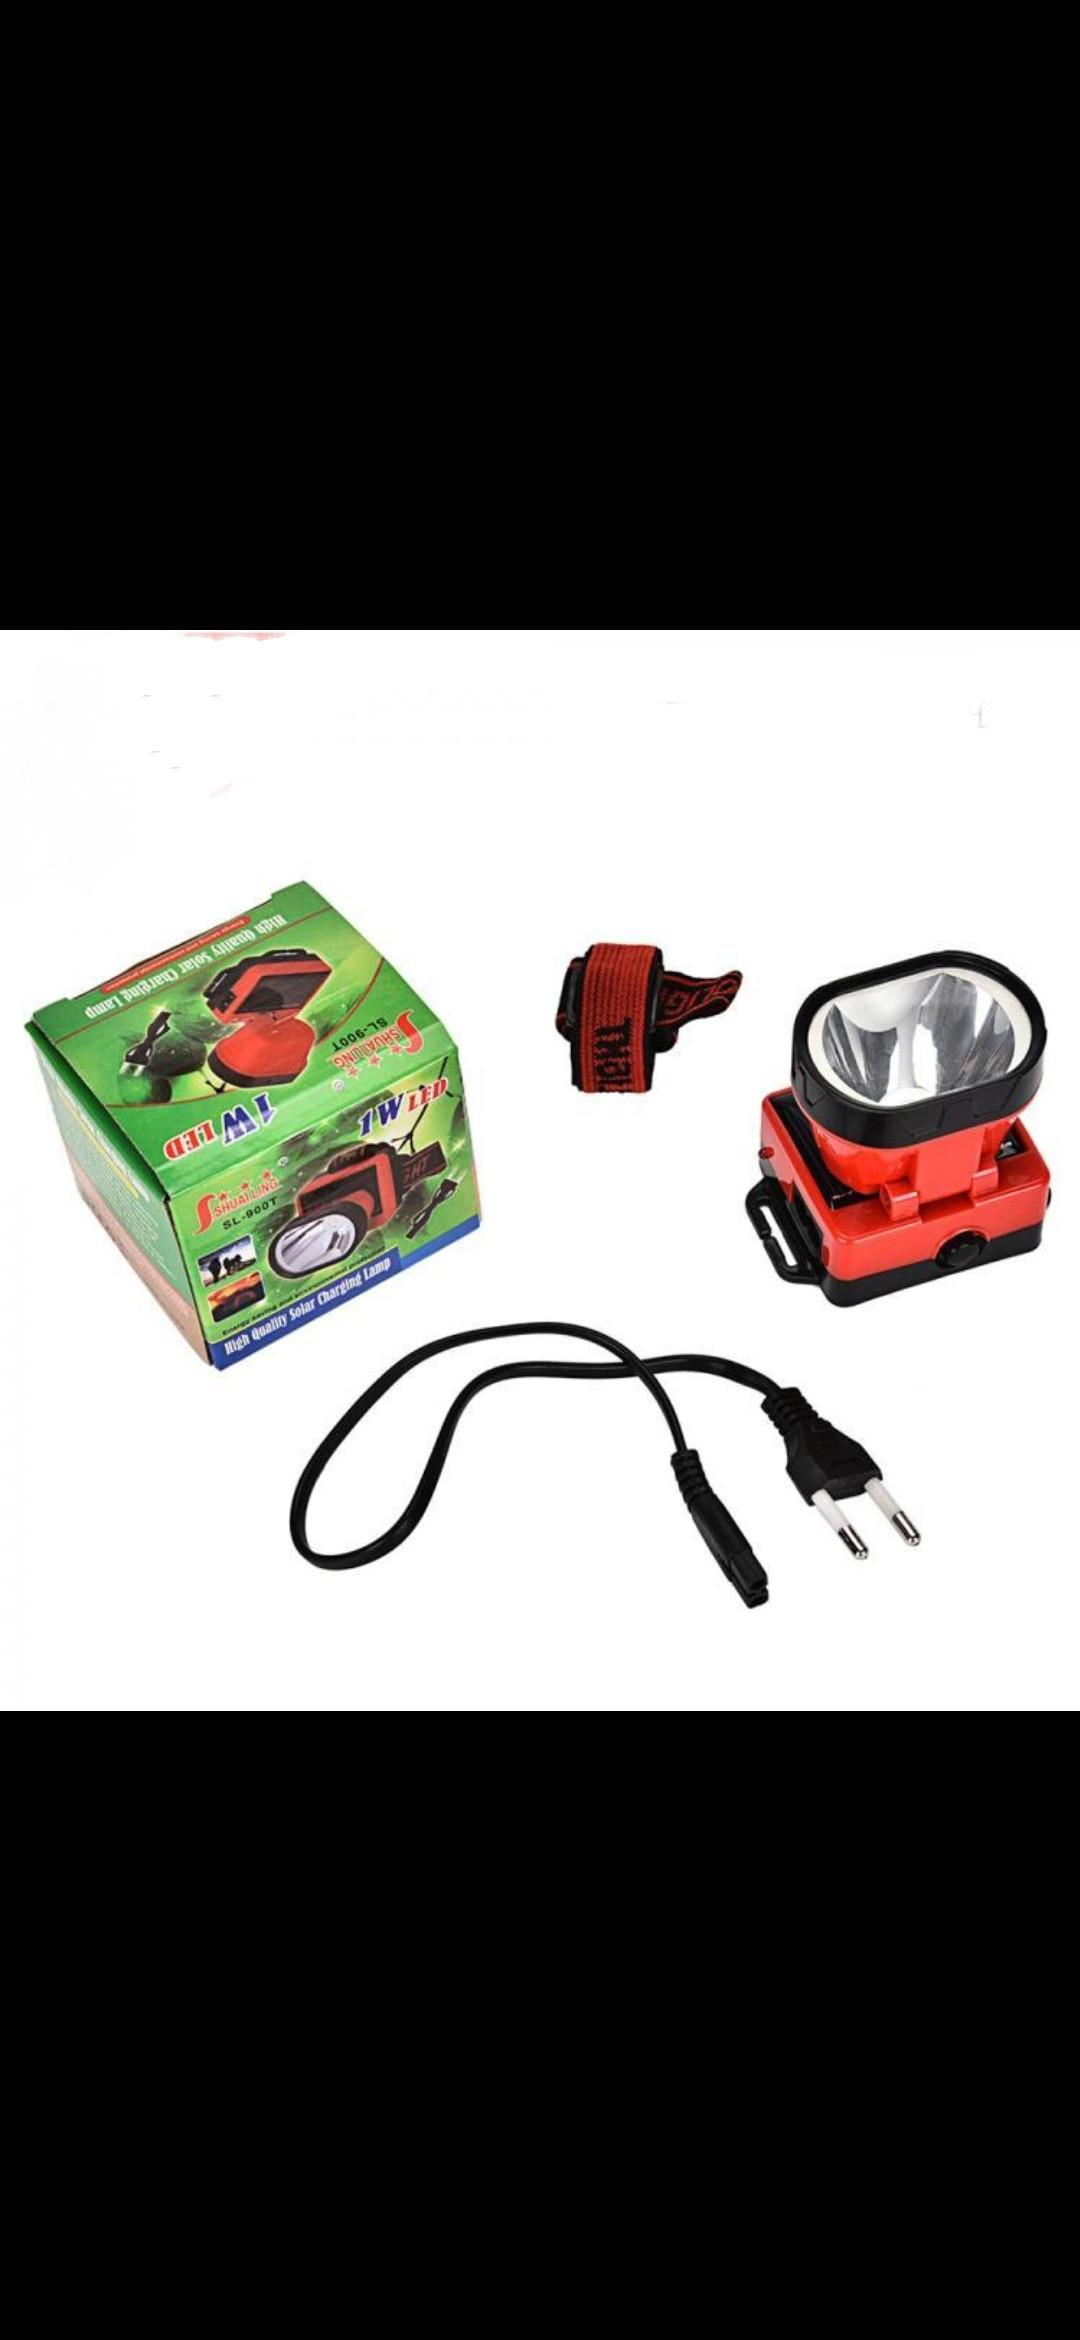 1W solar headlamp 400mah rechargeable battery headlight with AC cable and indictor light